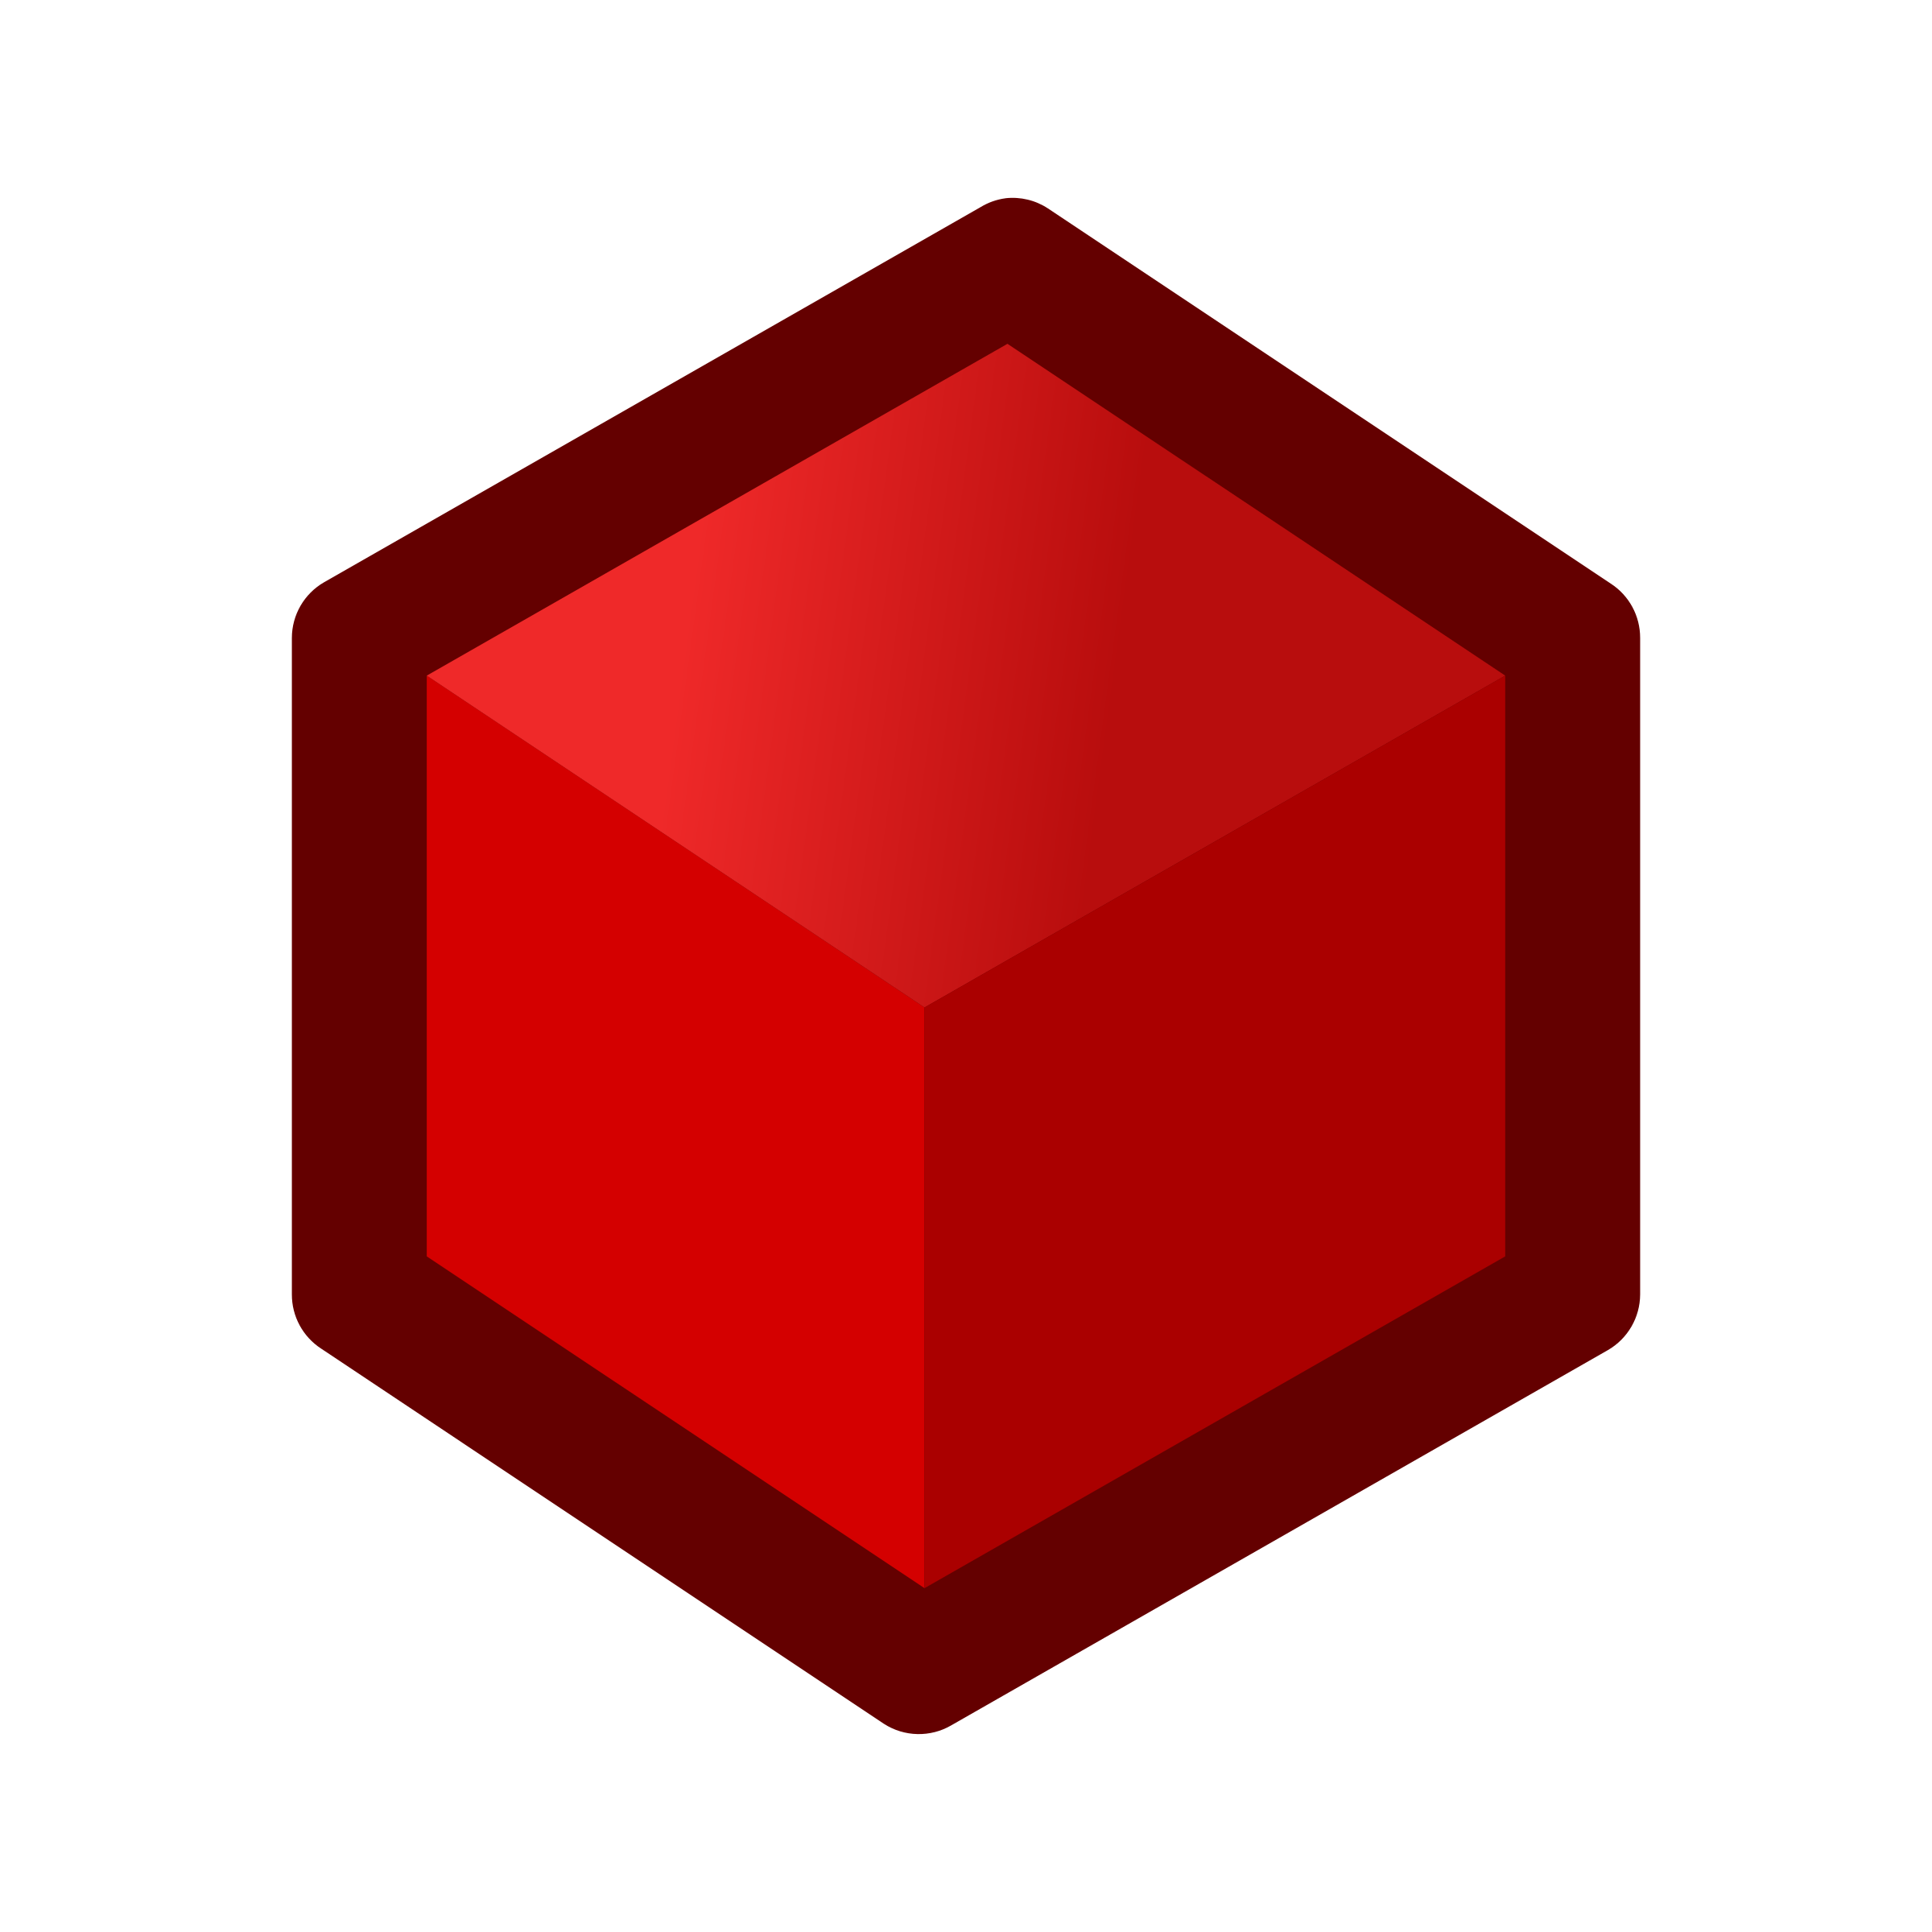 Cube clip red. Icon icons png free